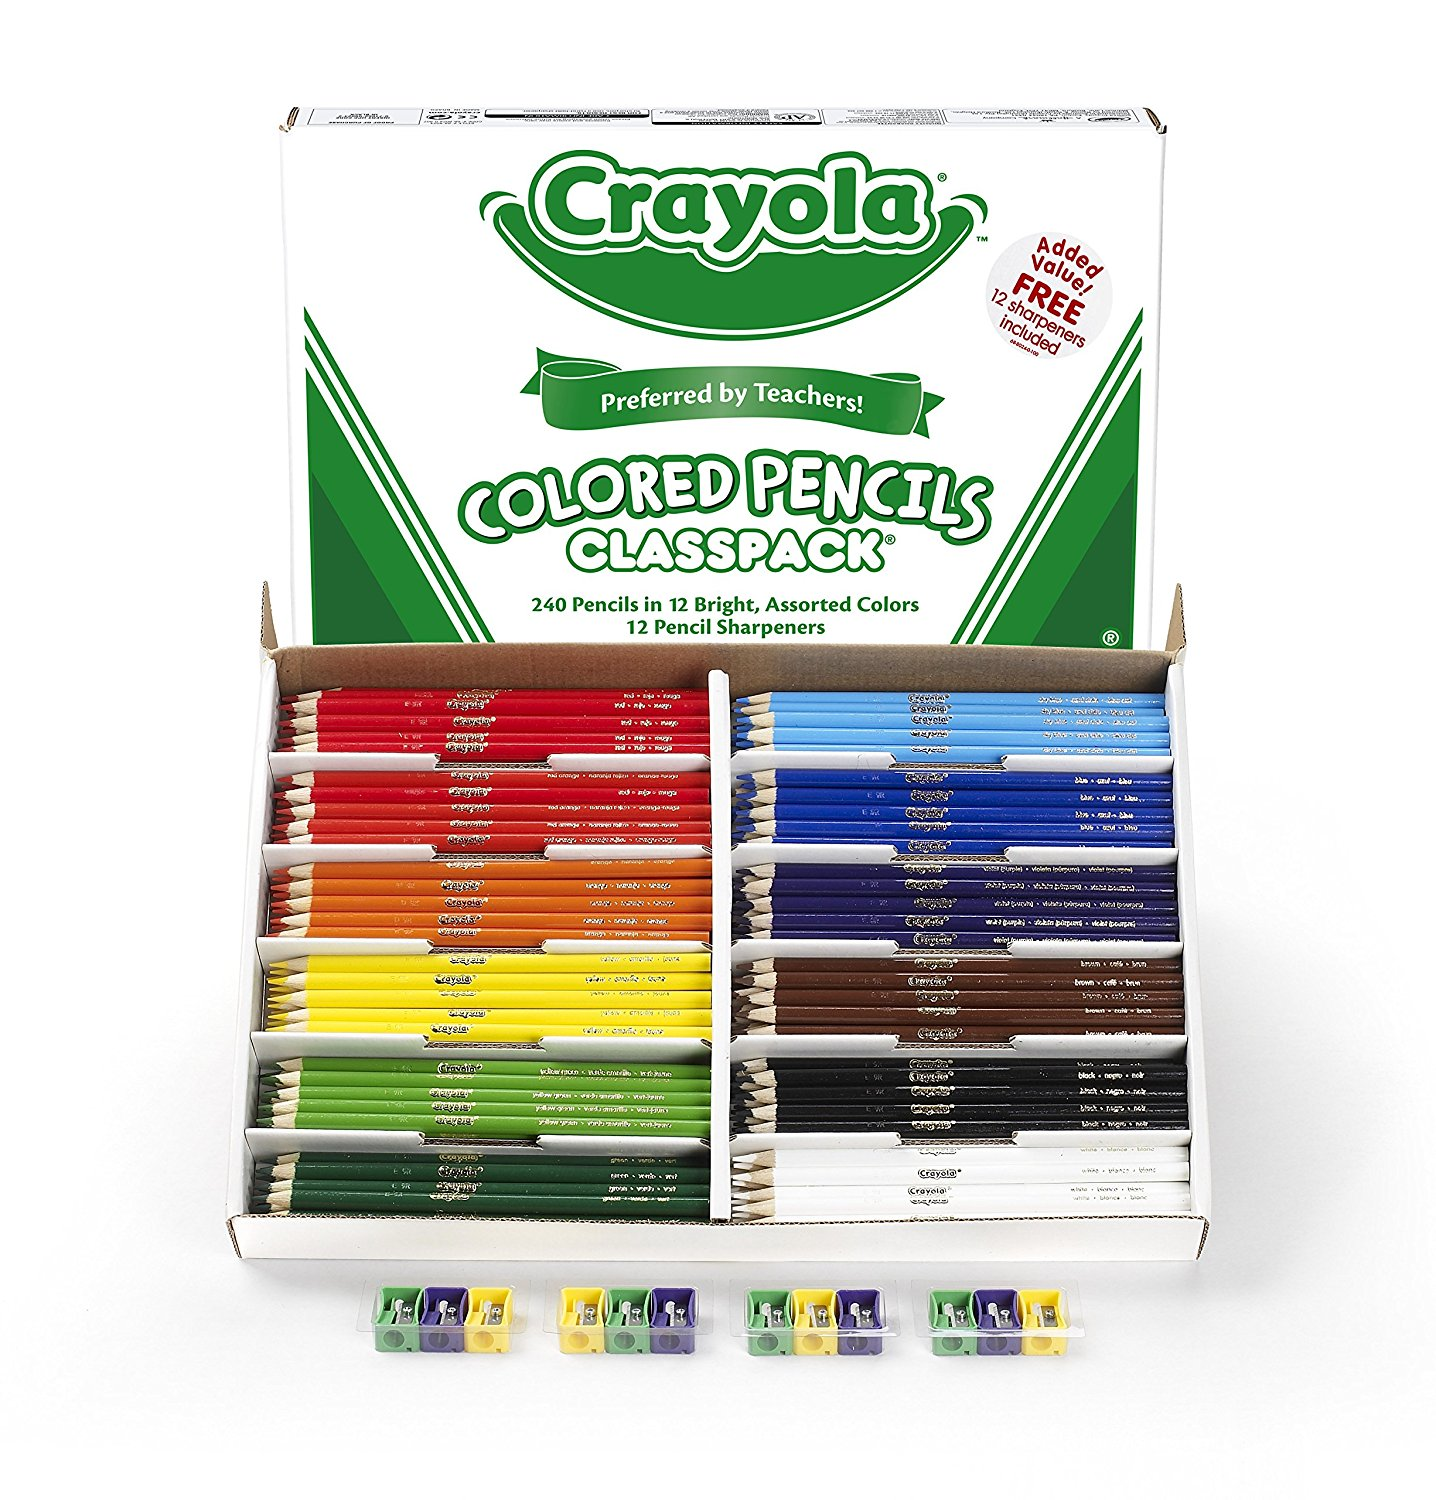 TODAY ONLY!  Save up to 40% on Crayola Products! Back to school sale!  https://t.co/rPBz77Hudt https://t.co/XgPOrvWT1X